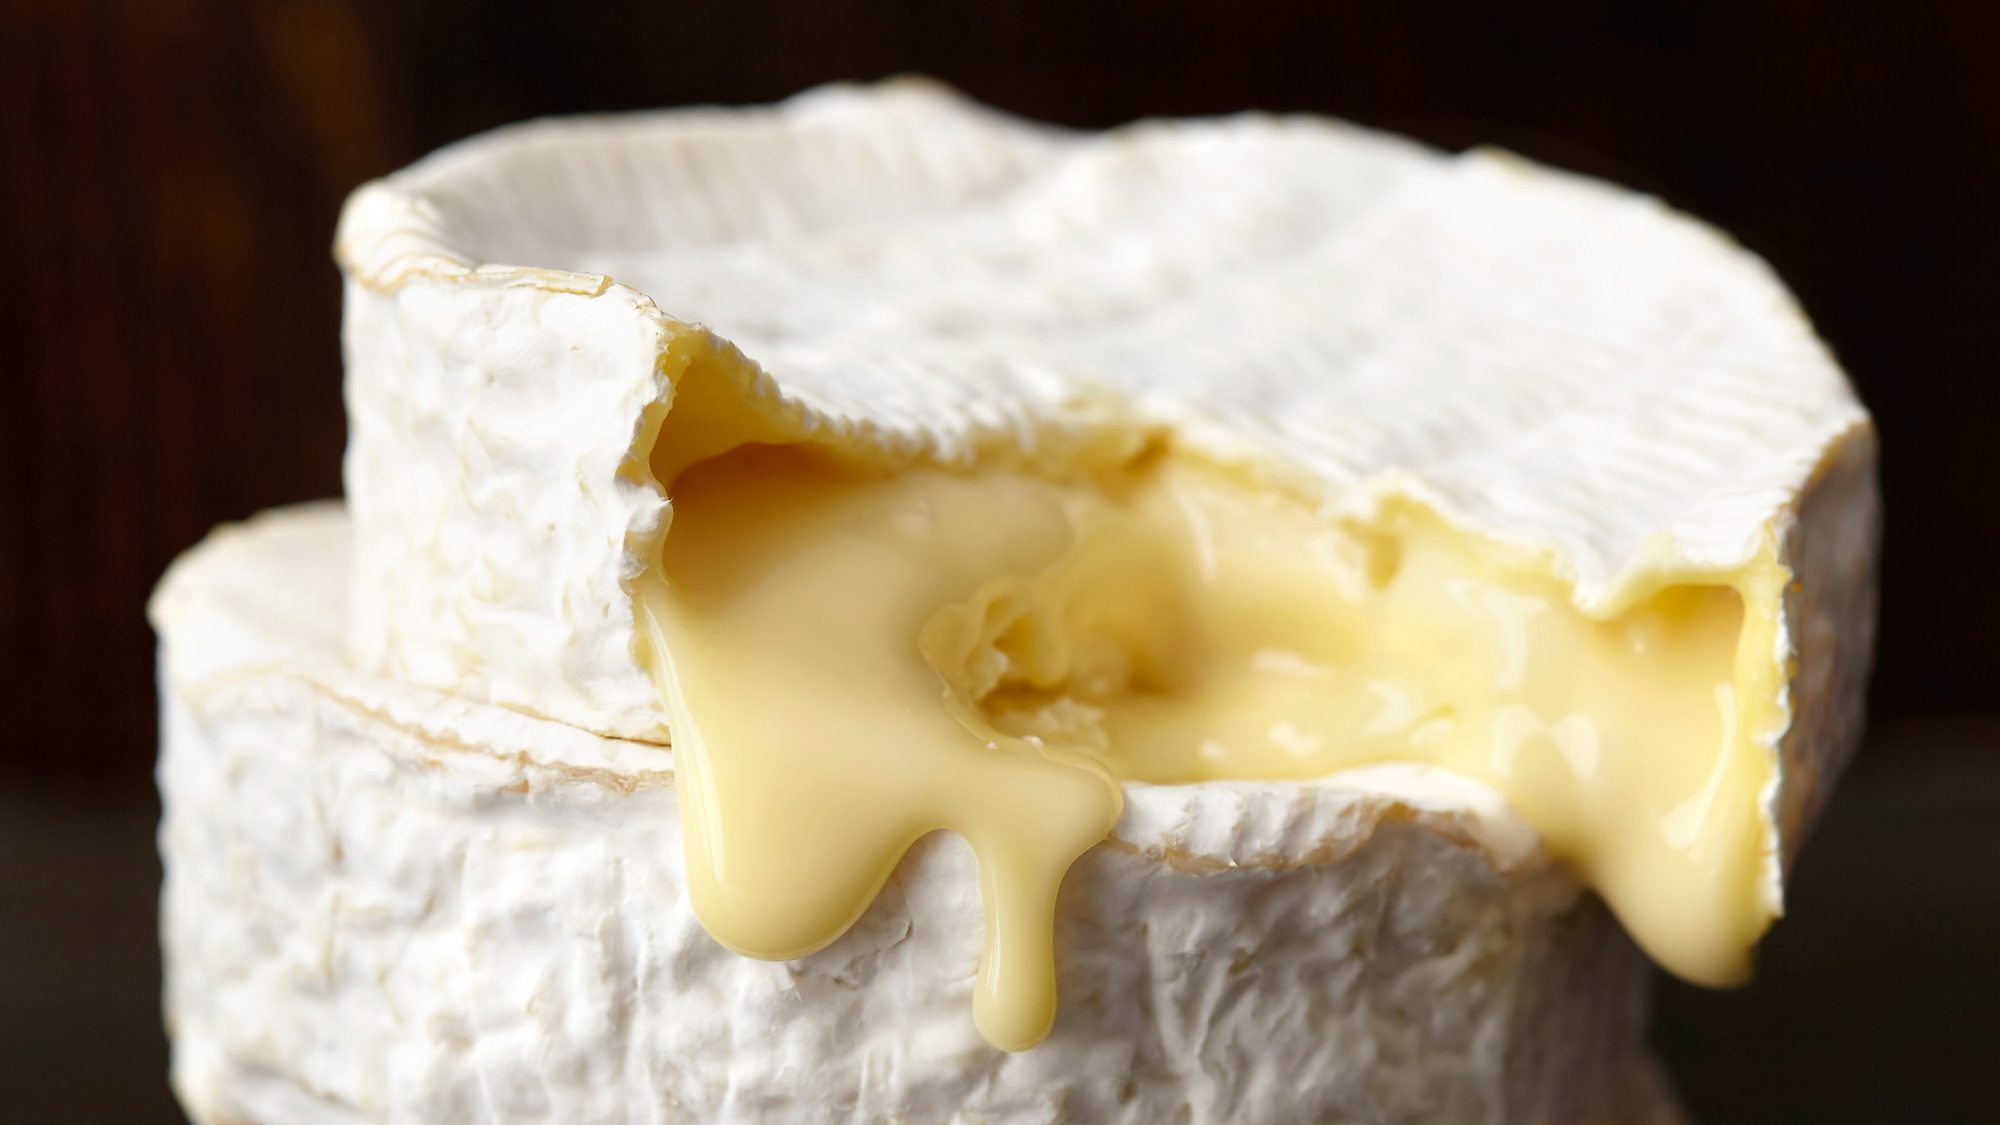 EC: The Case for Eating Cheese Is Stronger Than Ever